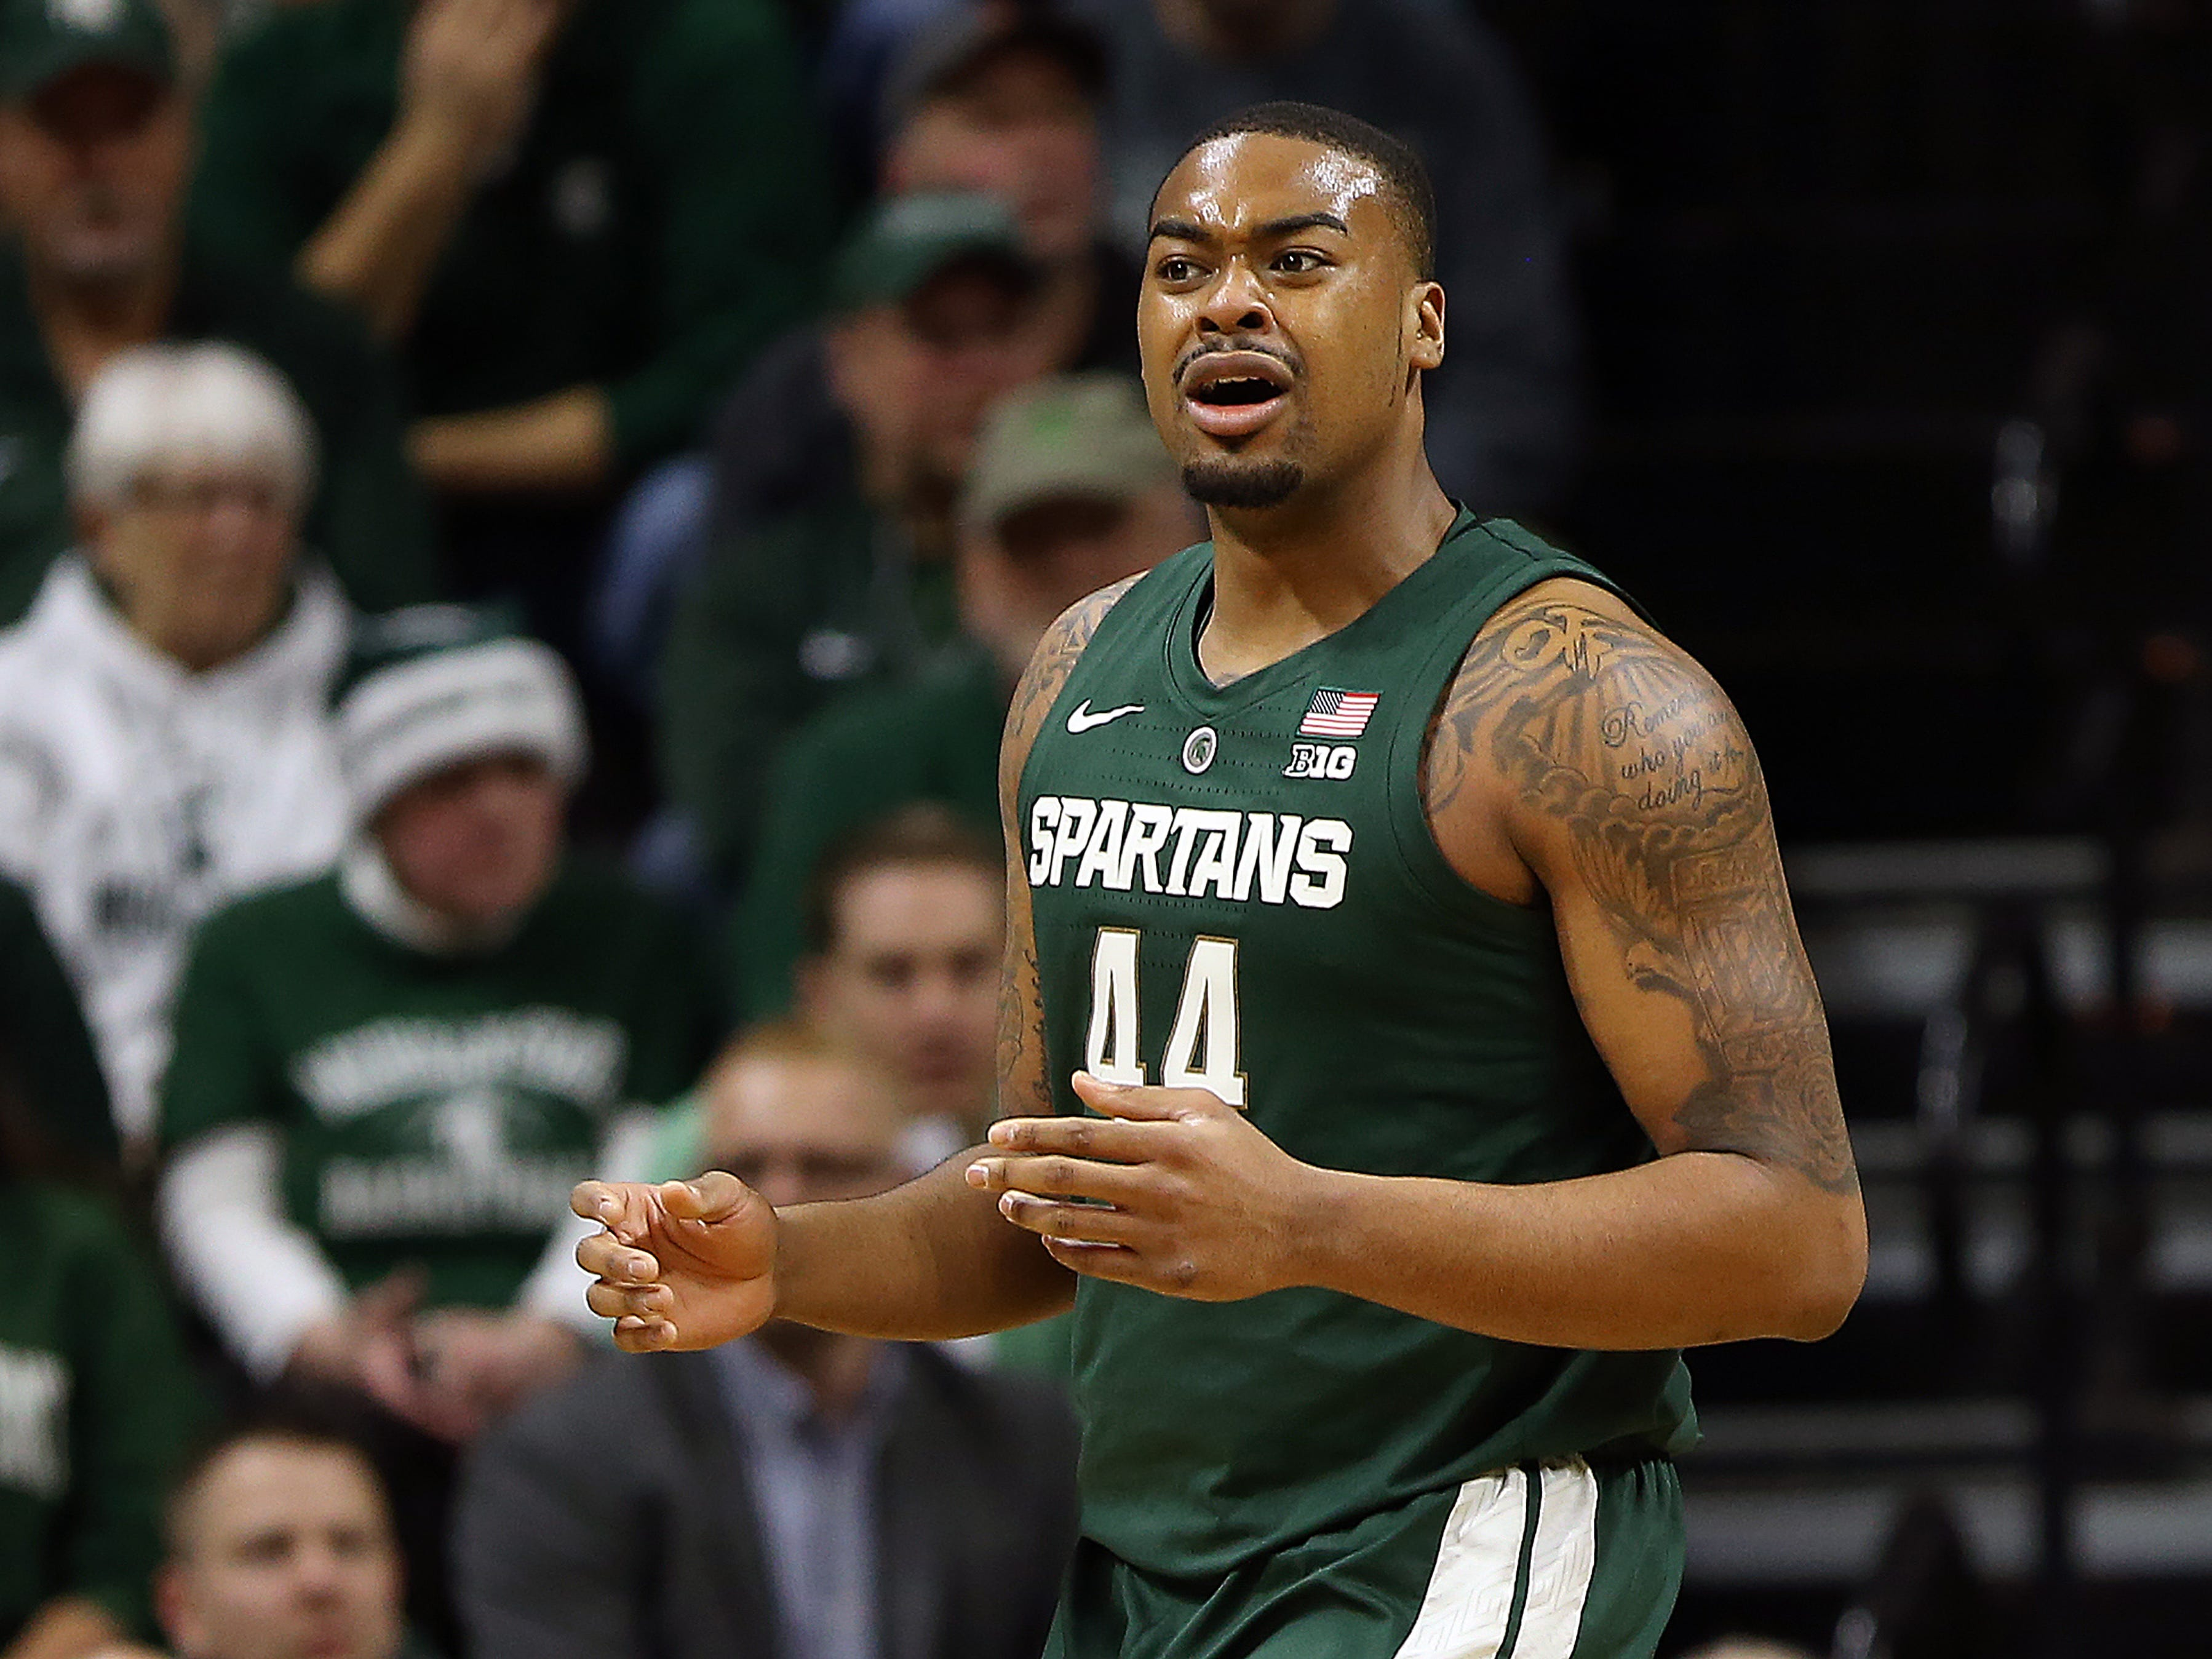 Michigan State Spartans forward Nick Ward (44) reacts during the second half of a game against the Oakland Golden Grizzlies at the Breslin Center.